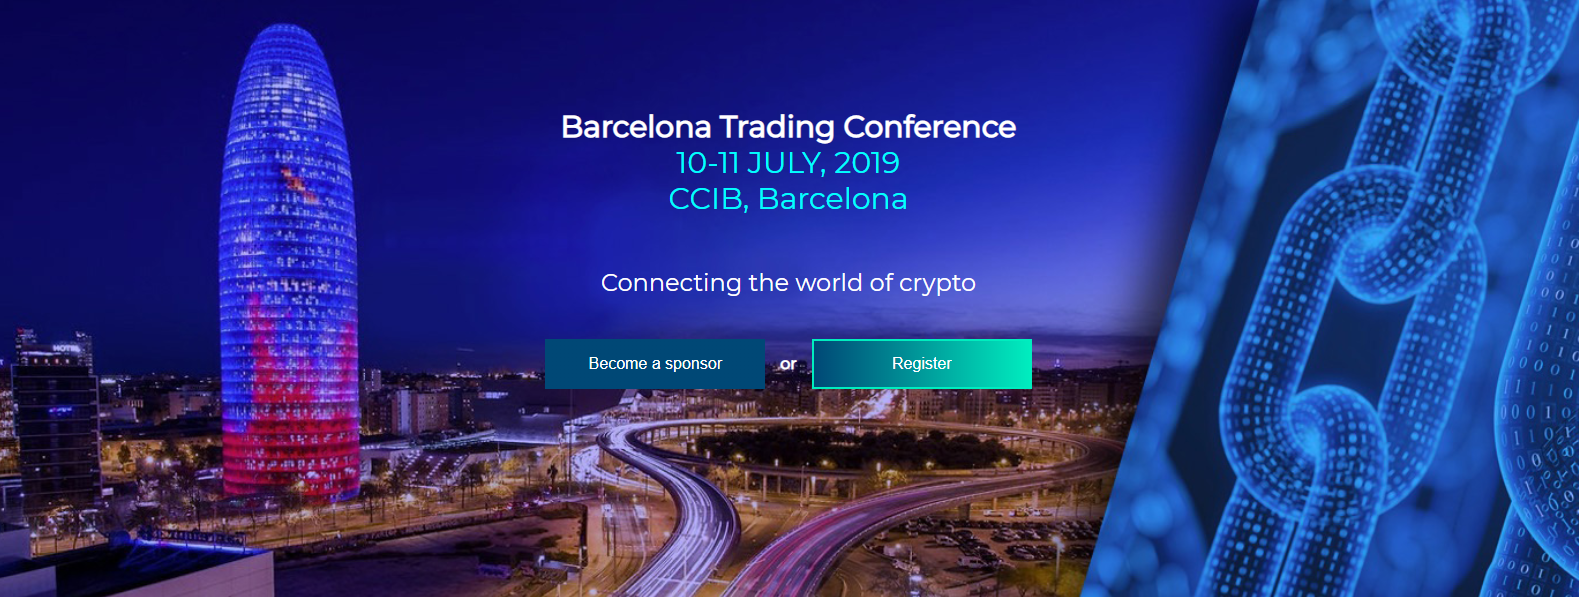 Barcelona Trading Conference (BTC) 2019 – Hot Spot Dedicated to Crypto